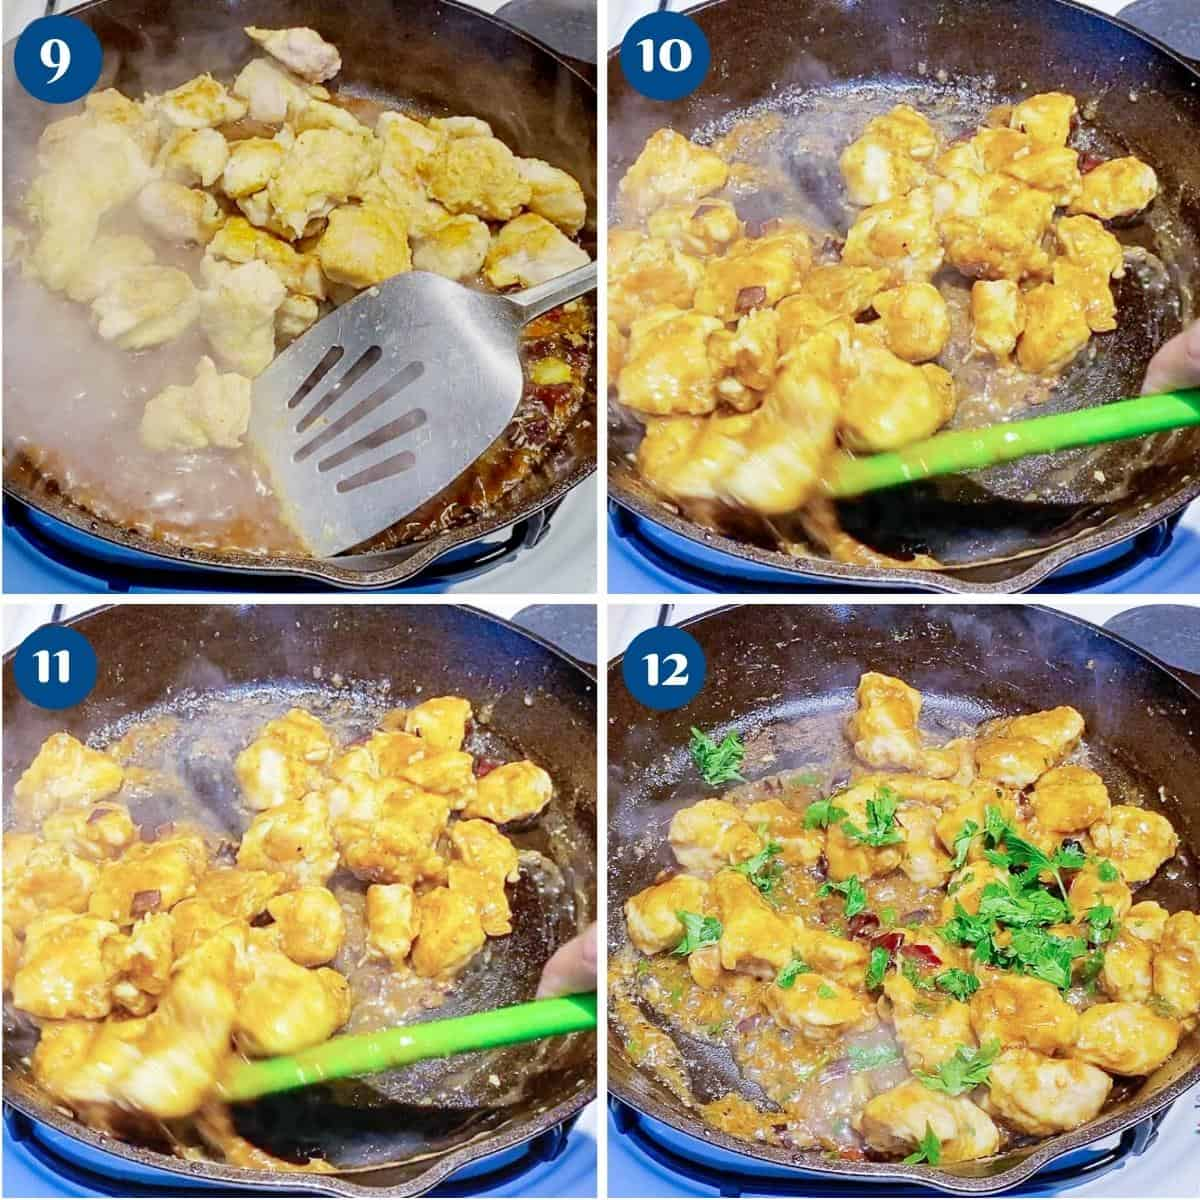 Progress pictures collage for healthy Tso's chicken.